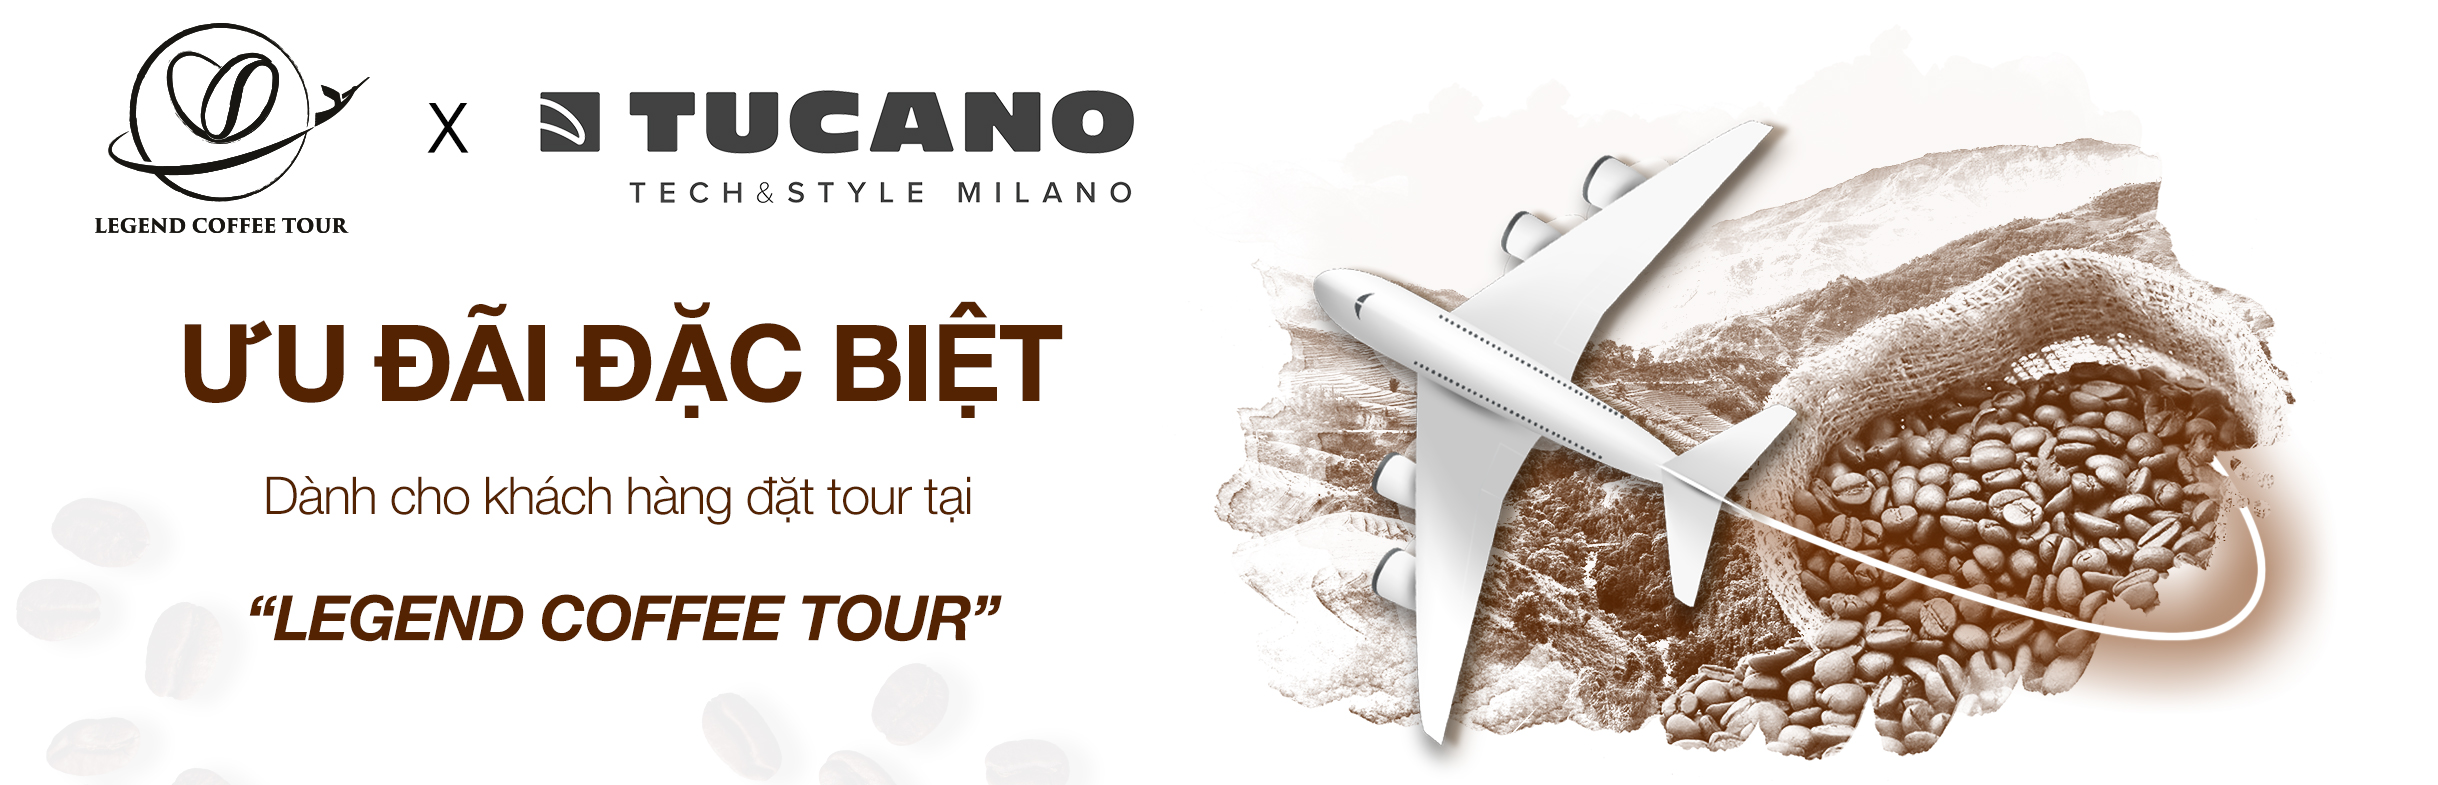 TUCANO x LEGEND COFFEE TOUR